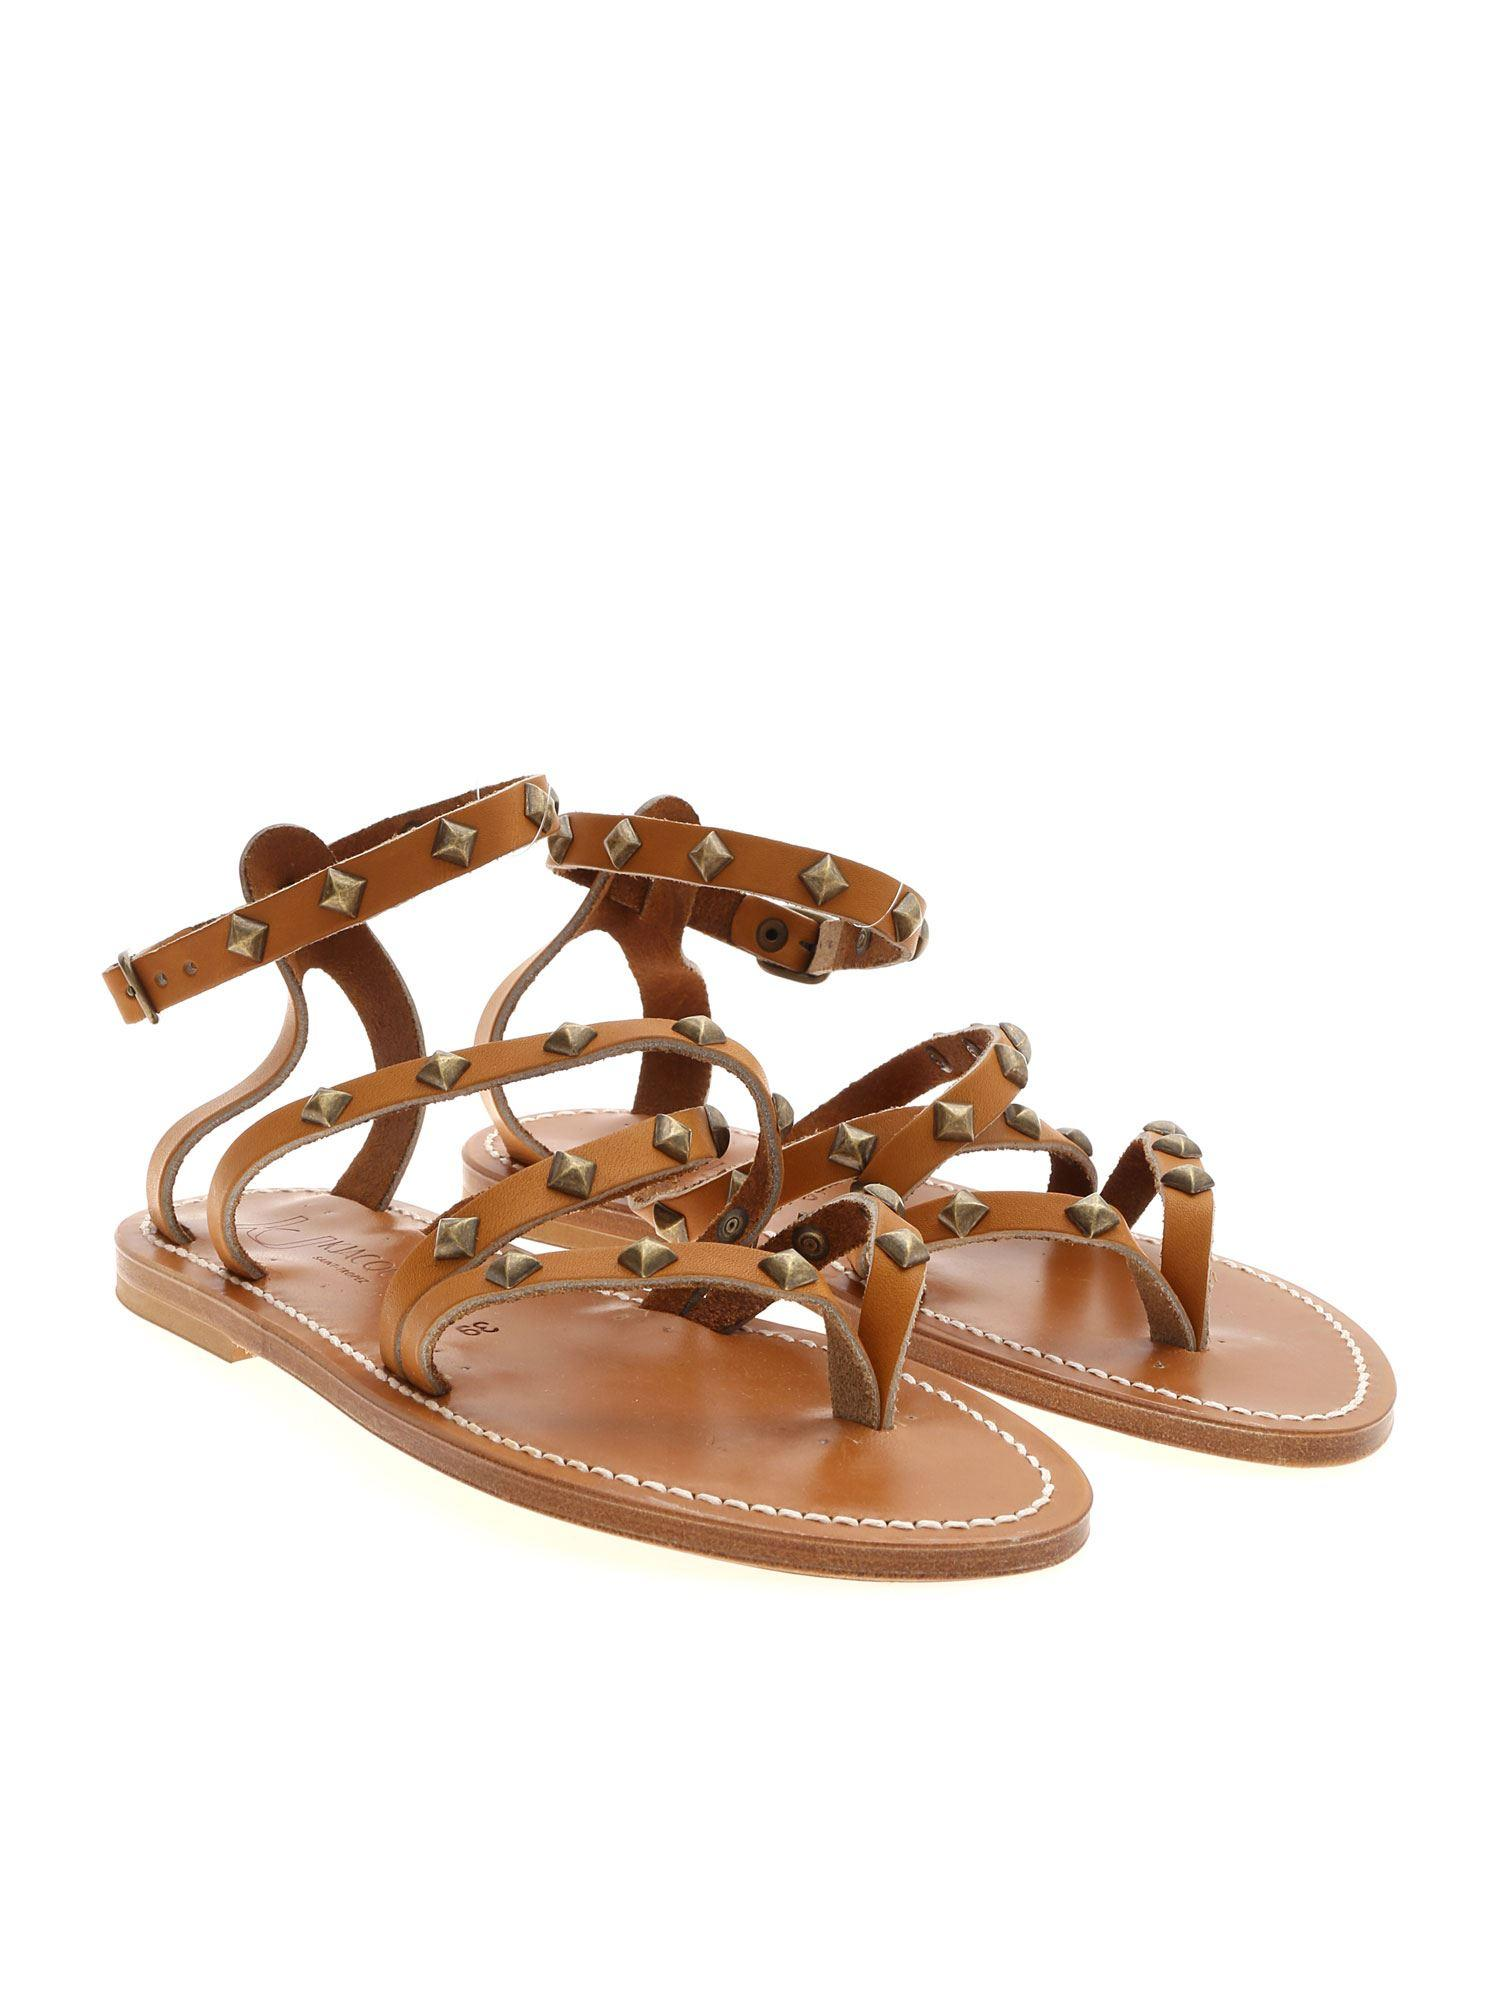 Sandals In Lyst Cuir Epicurepyr Beige Js54rc3alq Kjacques F Natural hdCQrxBots